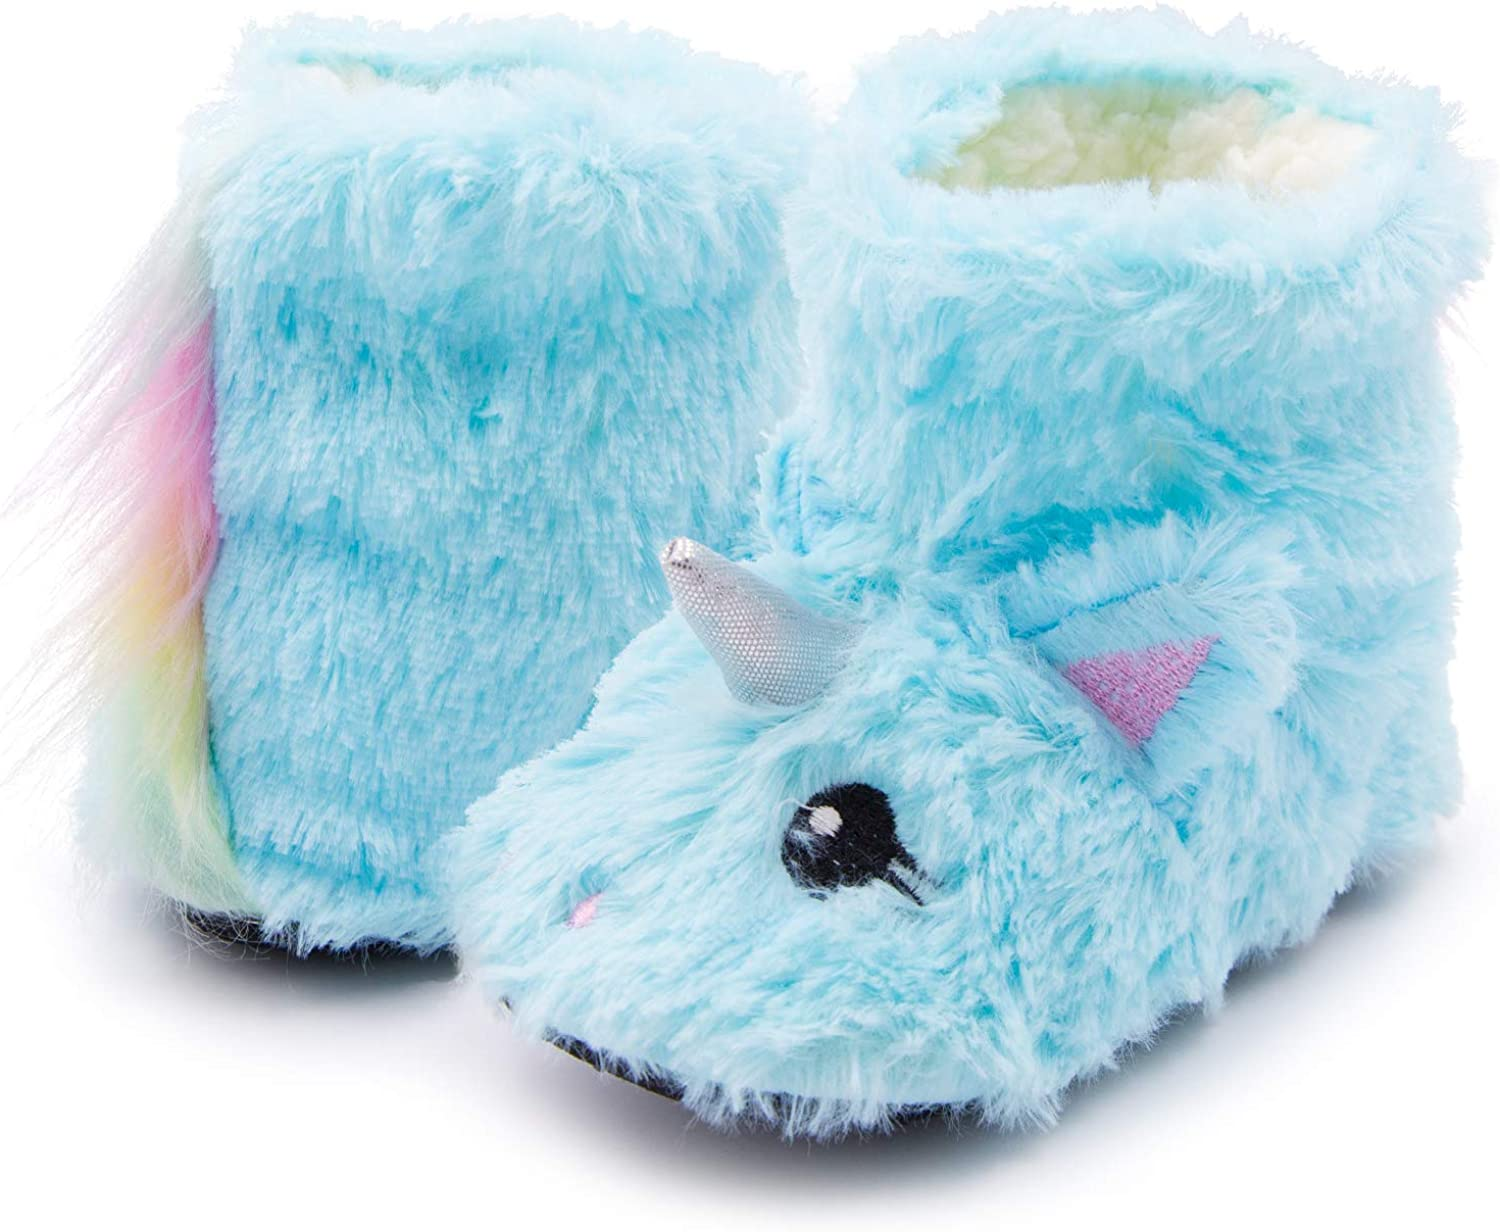 Unicorn Girls Max 74% OFF Slippers Kids Fluffy Fuzzy P Free shipping / New Warm Booties